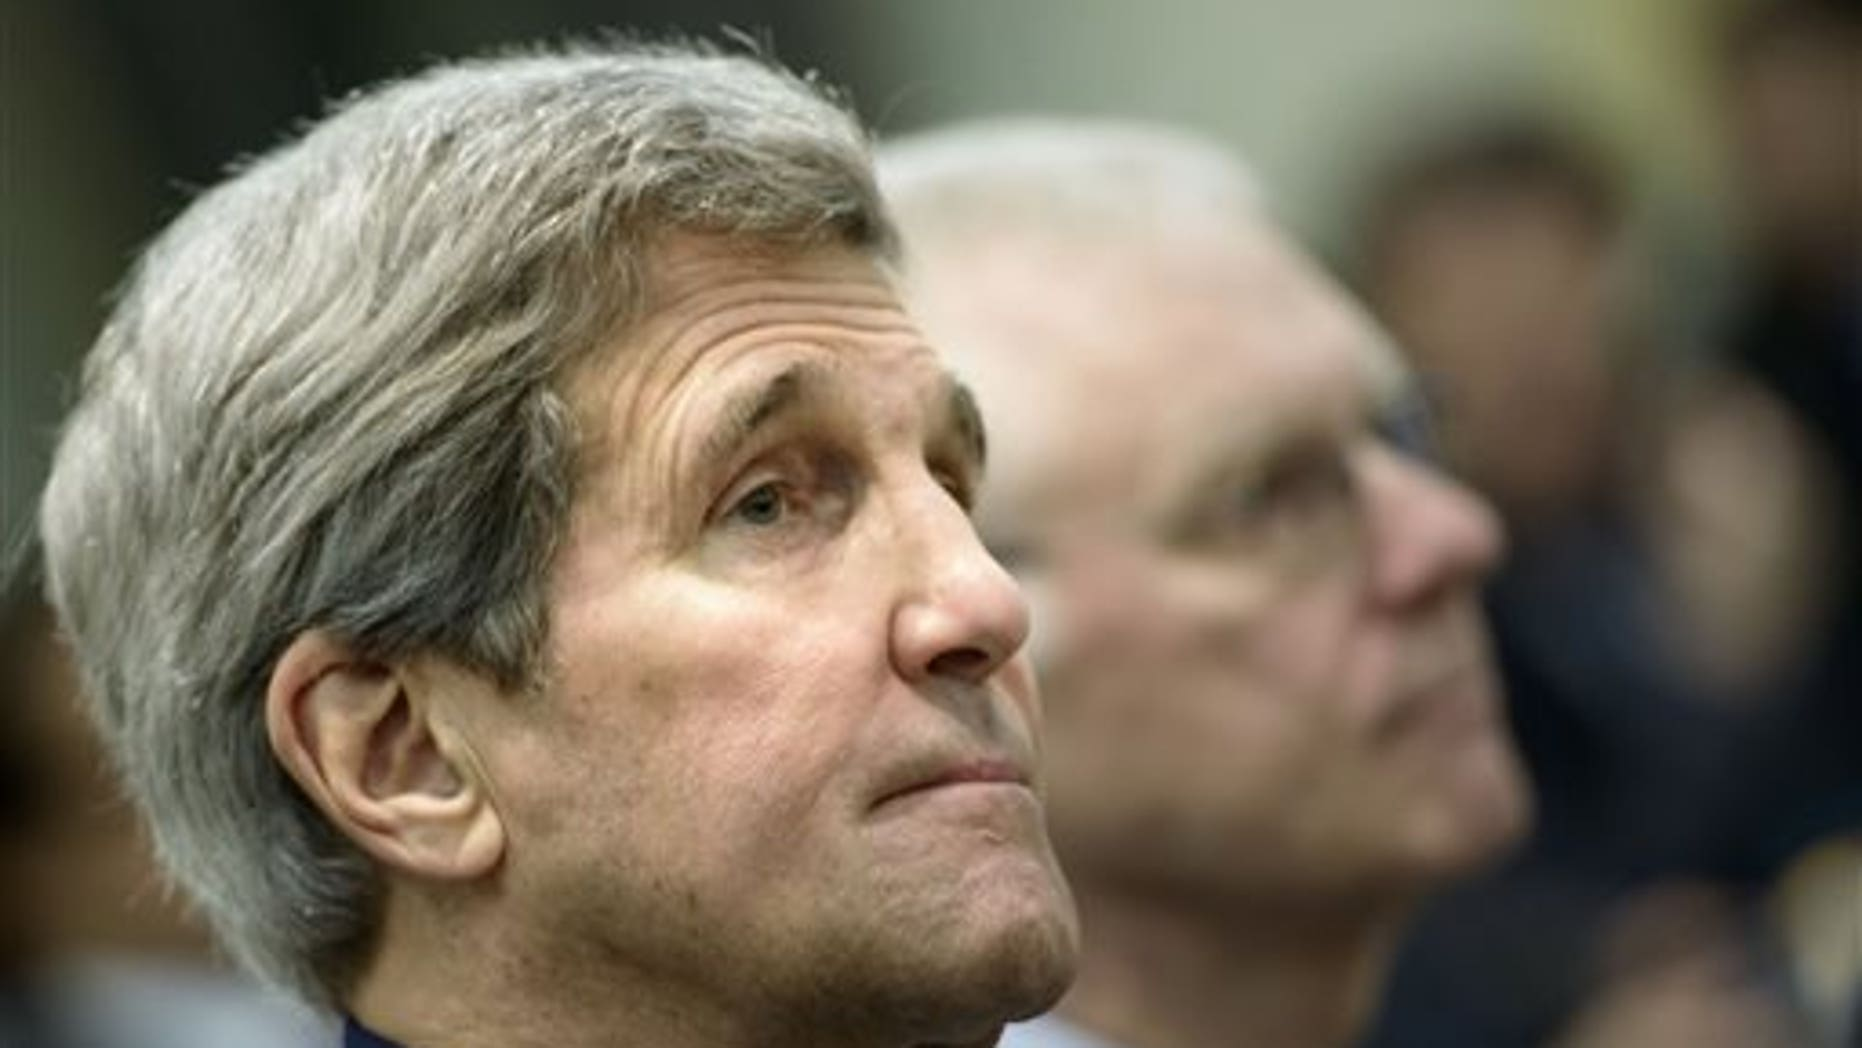 U.S. Secretary of State John Kerry waits for the start of a meeting on Iran's nuclear program with officials from Britain, France, Germany, China, the European Union and Iran in Lausanne, Switzerland Tuesday, March 31, 2015. (AP Photo/Brendan Smialowski, Pool)